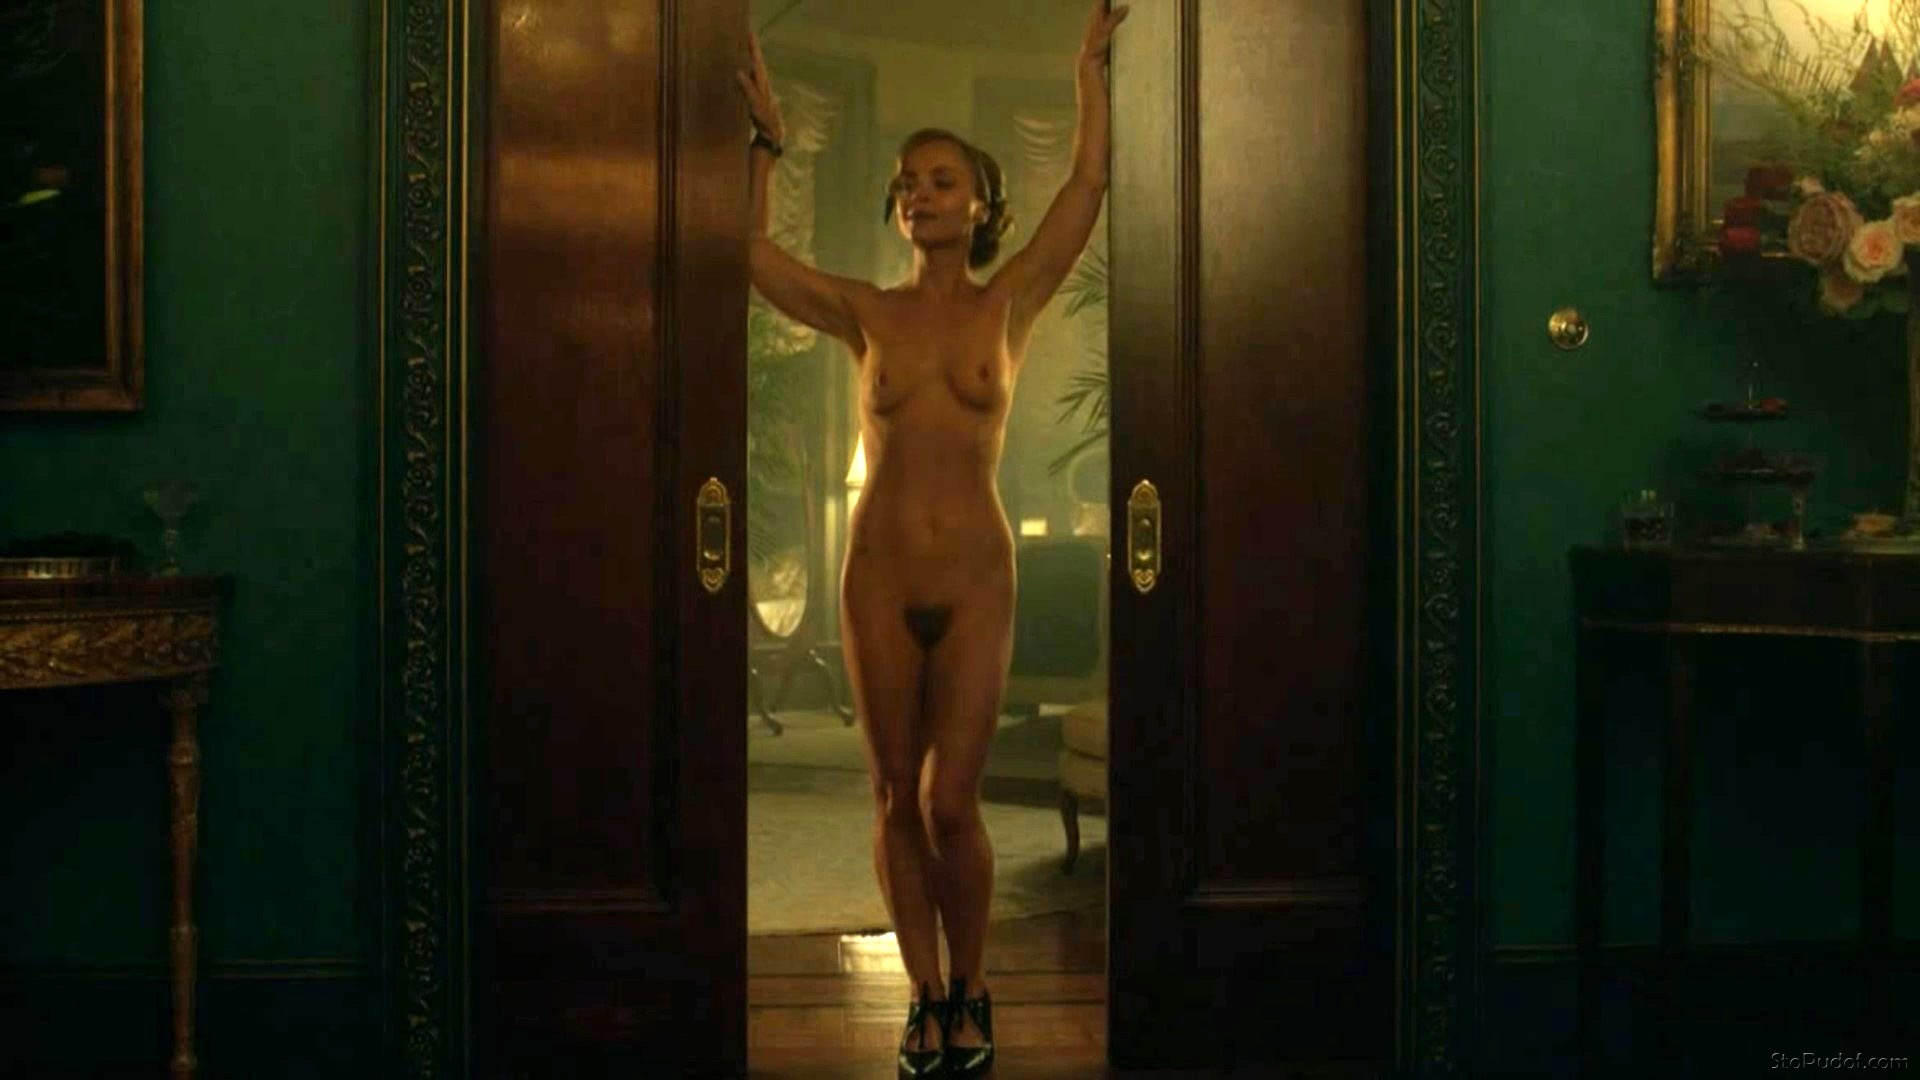 nude pictures of Christina Ricci - UkPhotoSafari